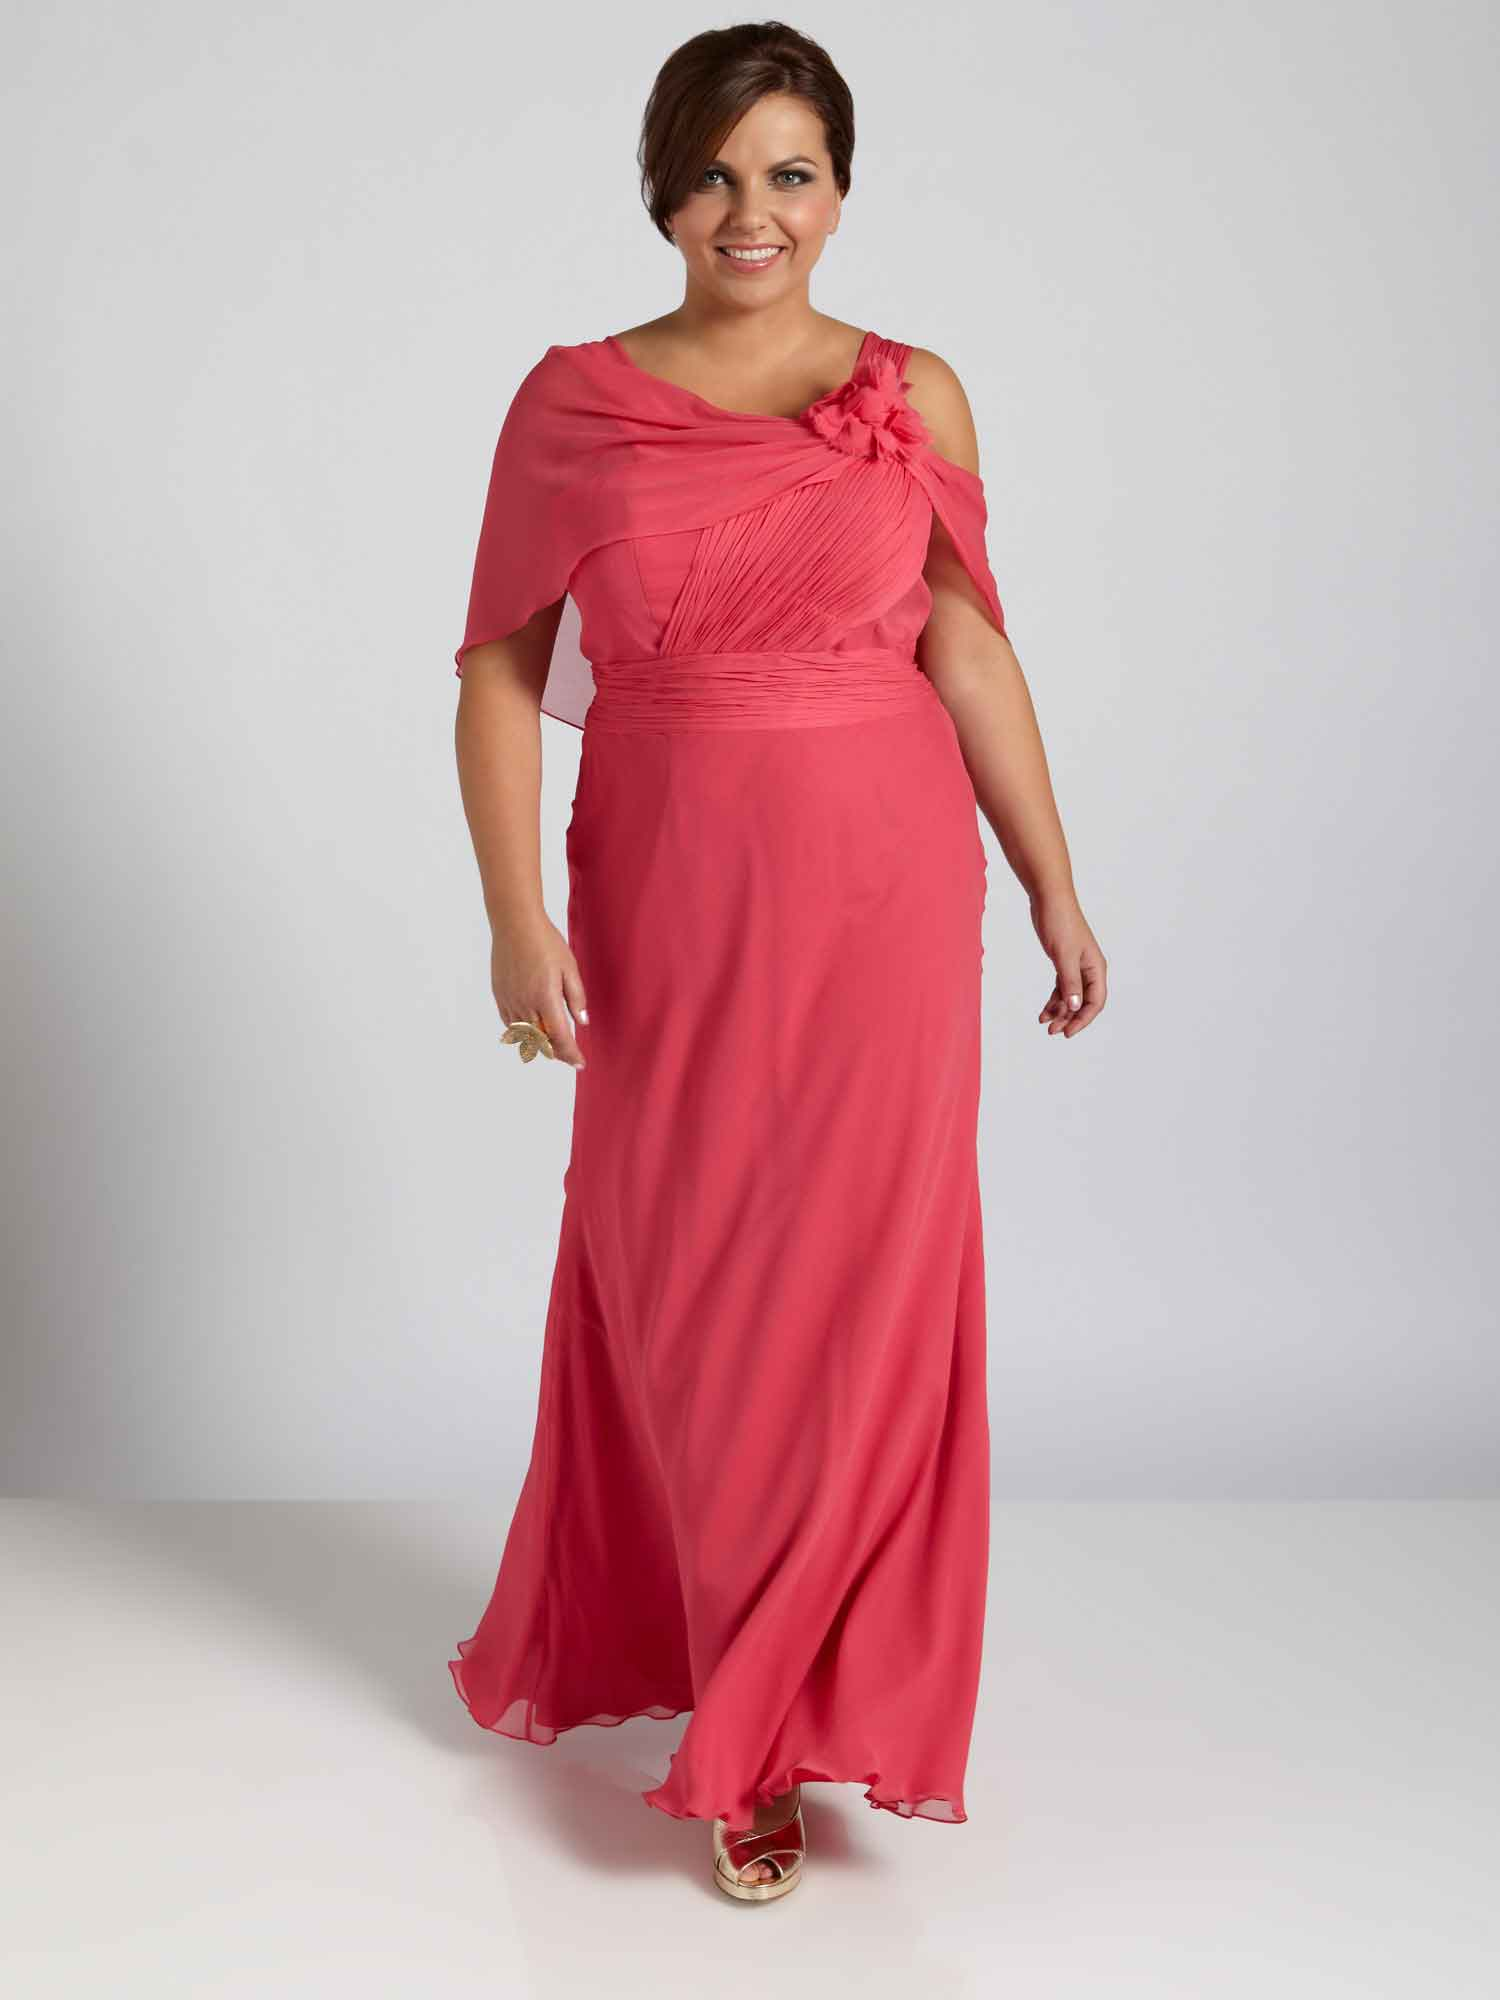 Plus Size Evening Wear Mother Of The Bride Cocktail Dresses